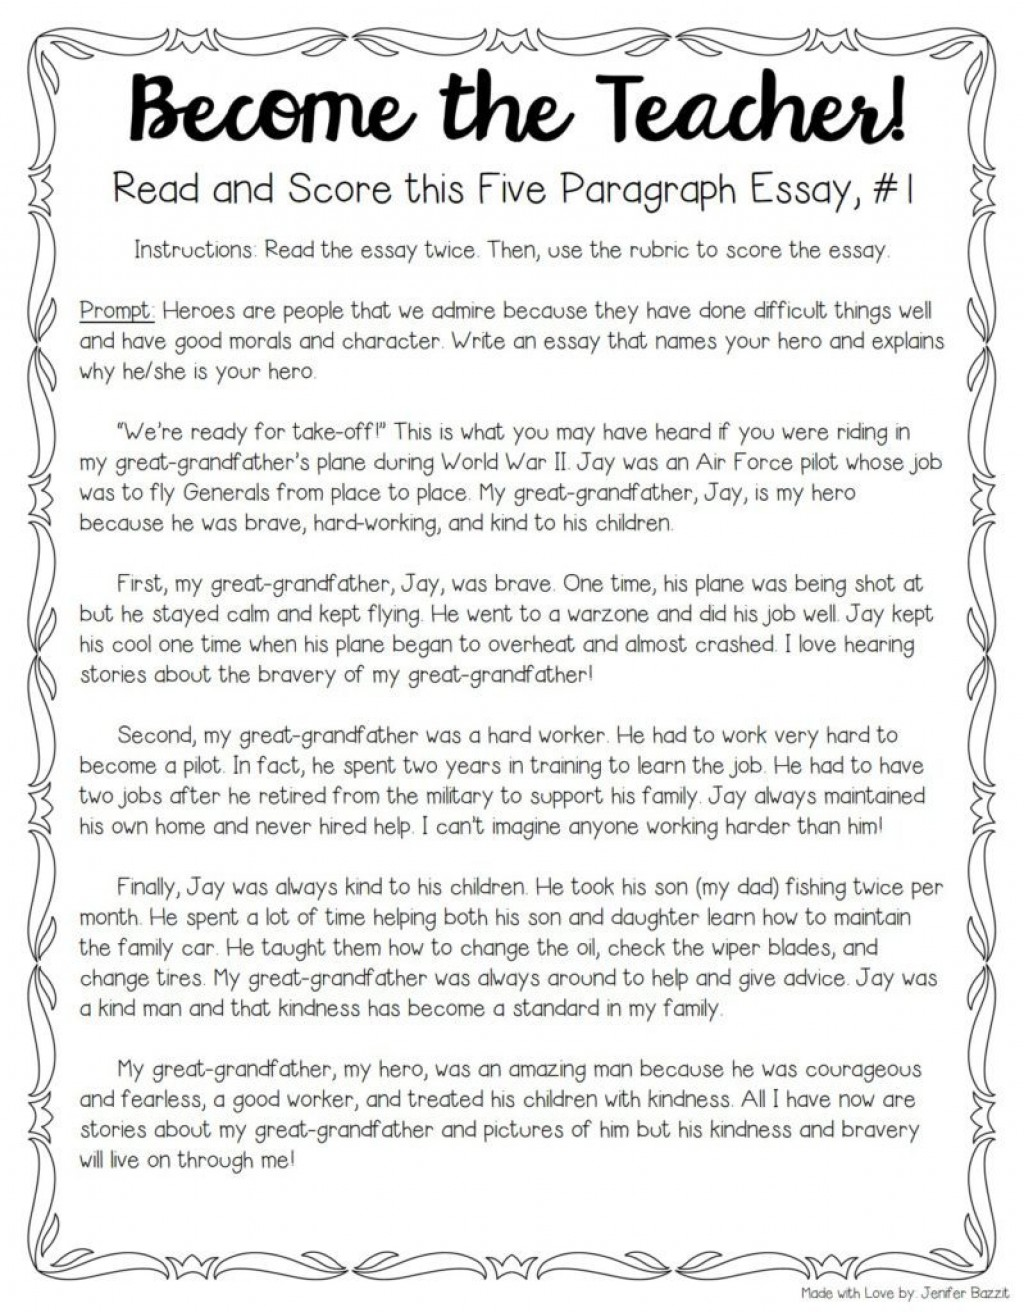 002 Essay Example How Many Paragraphs Are In Five Paragraph Full Formidable A Argumentative Narrative Large